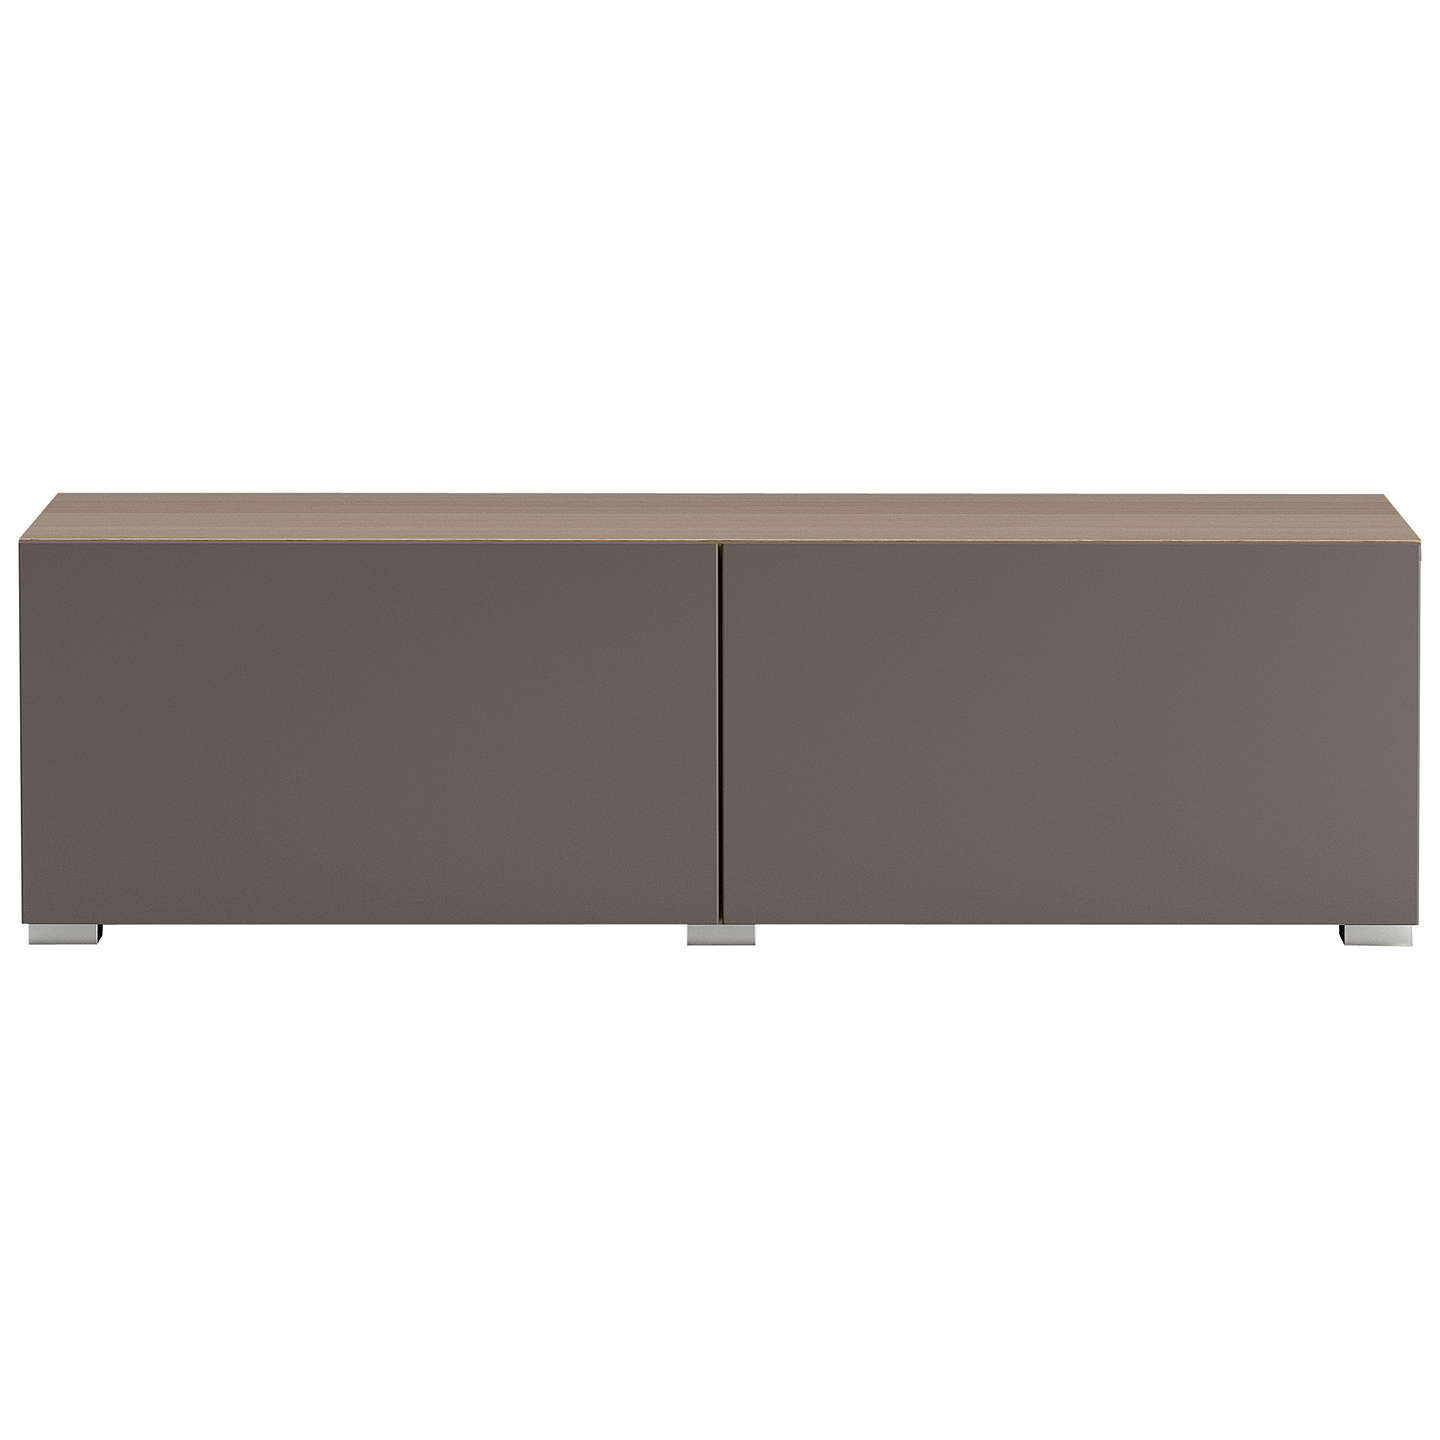 BuyHouse by John Lewis Match Low wide Shelf Unit Oak & Matt Mocha Doors Online at johnlewis.com